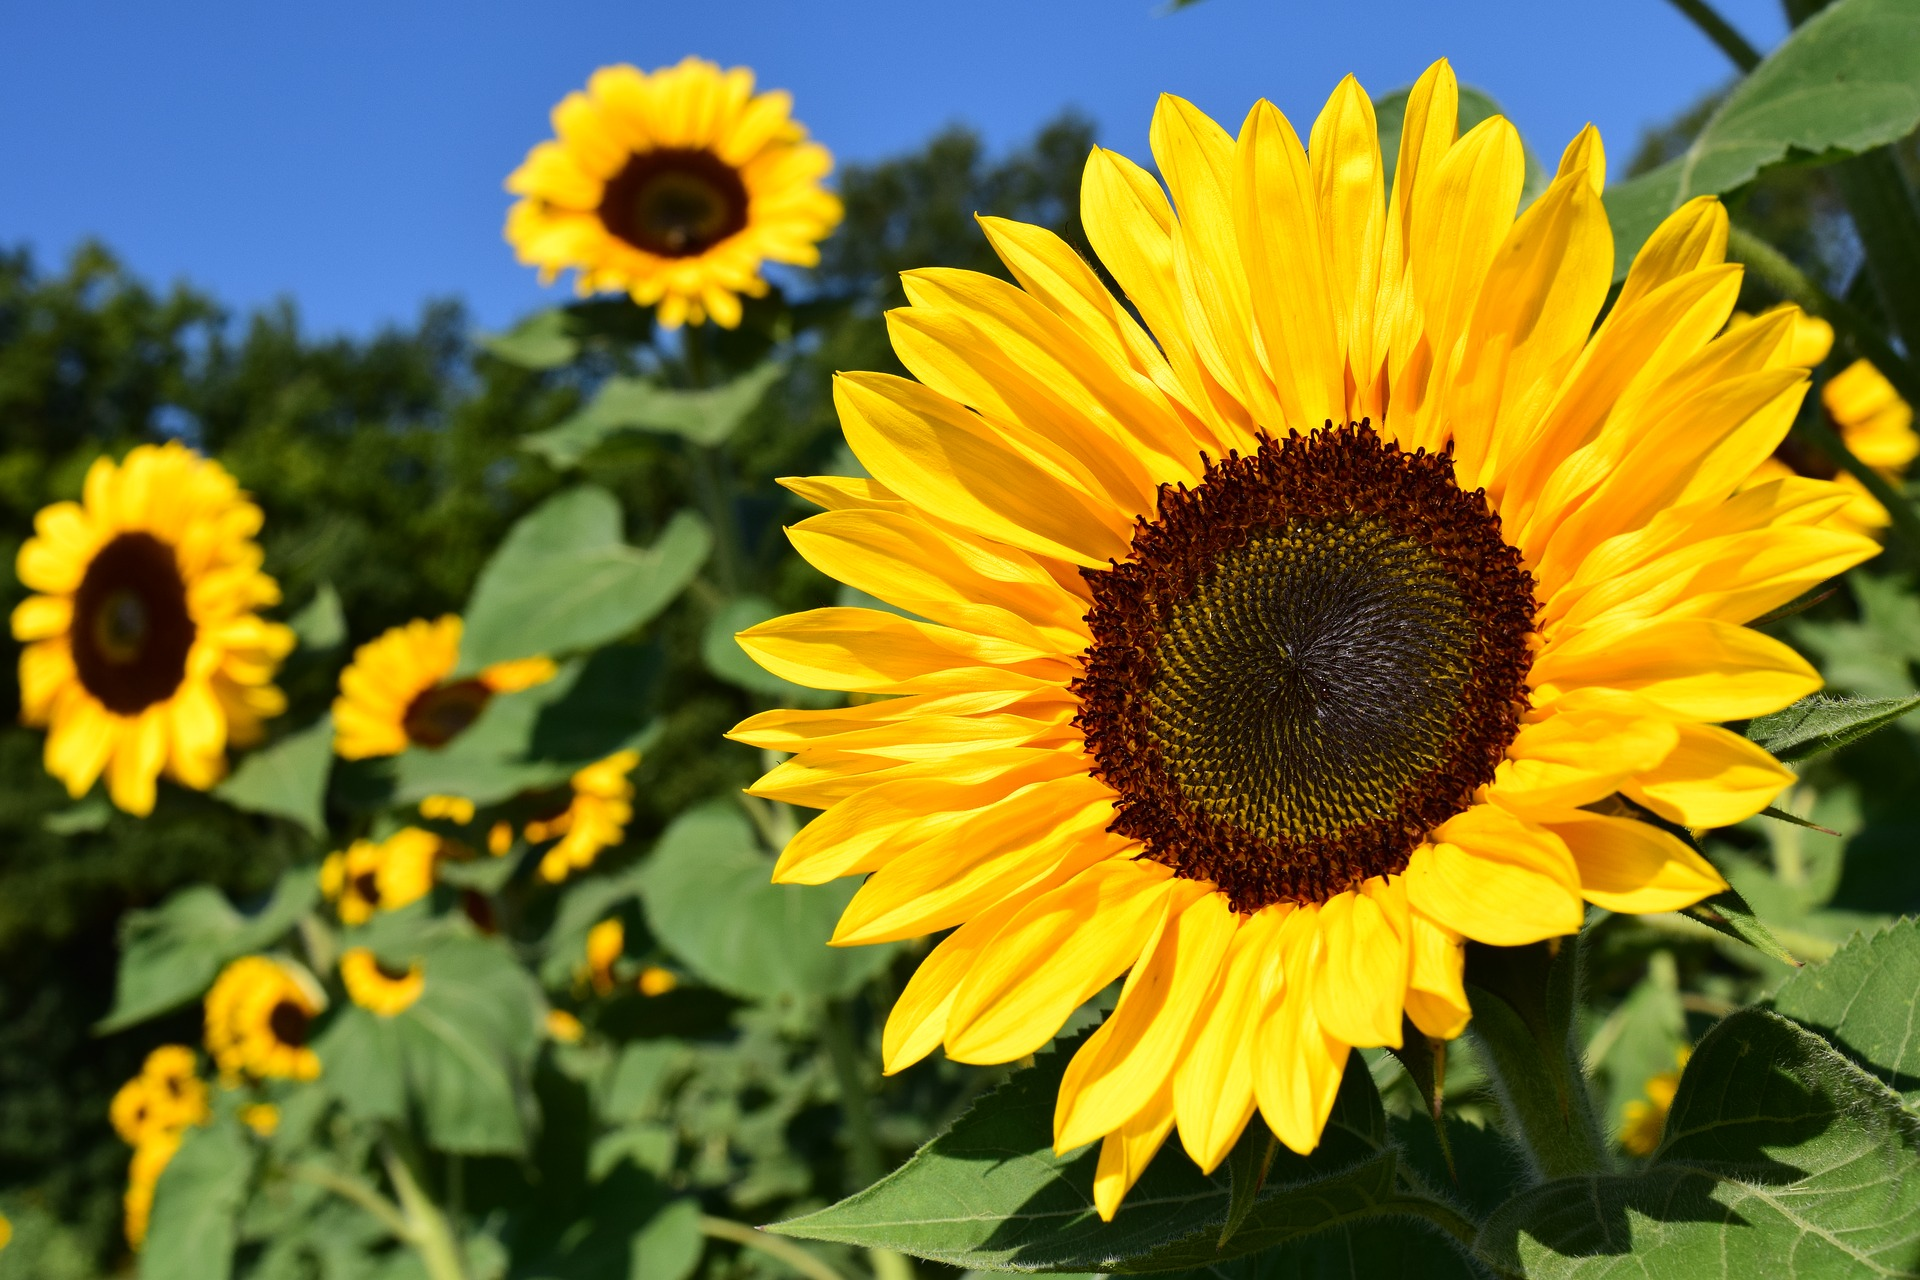 Sunflowers how to plant grow and care for sunflower plants the sunflowers how to plant grow and care for sunflower plants the old farmers almanac izmirmasajfo